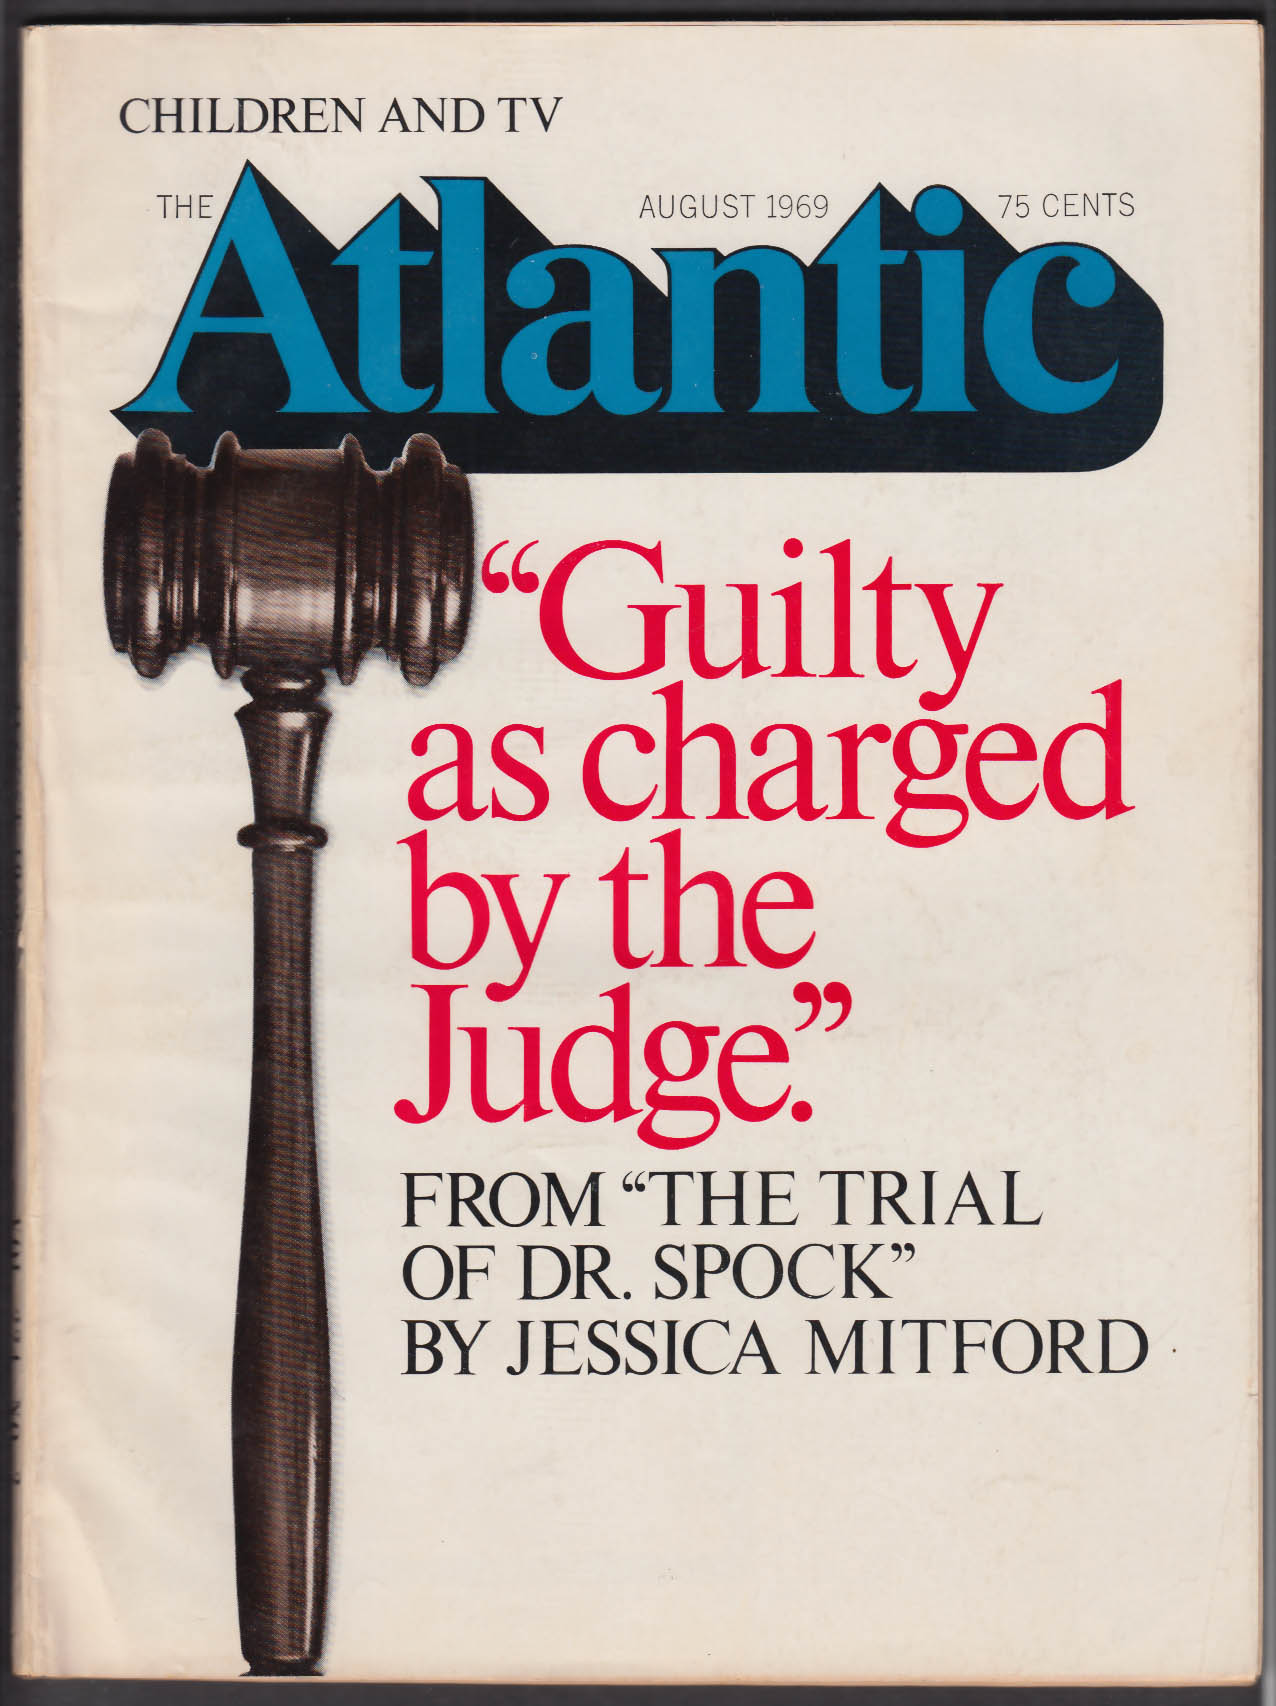 ATLANTIC Mitford on Trial of Dr Spock Herbert Gold Robert Jay Lifton ++ 8 1969